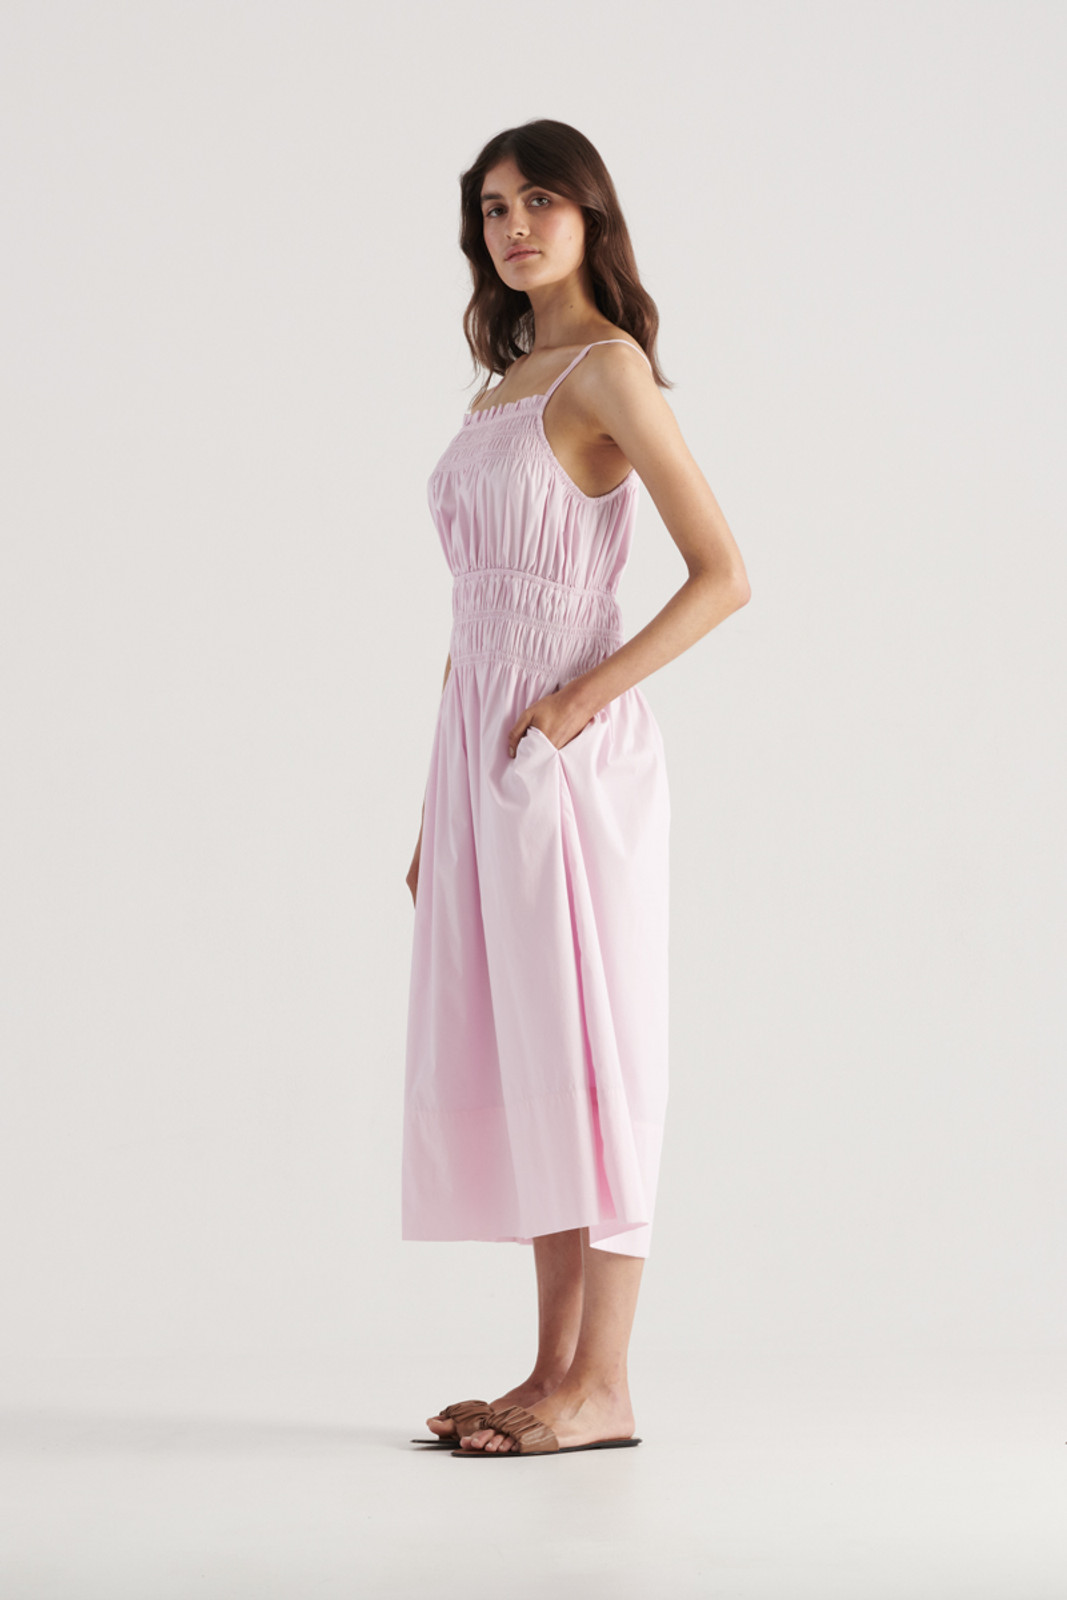 Elka Collective WomensThrive Dress Lilac  1